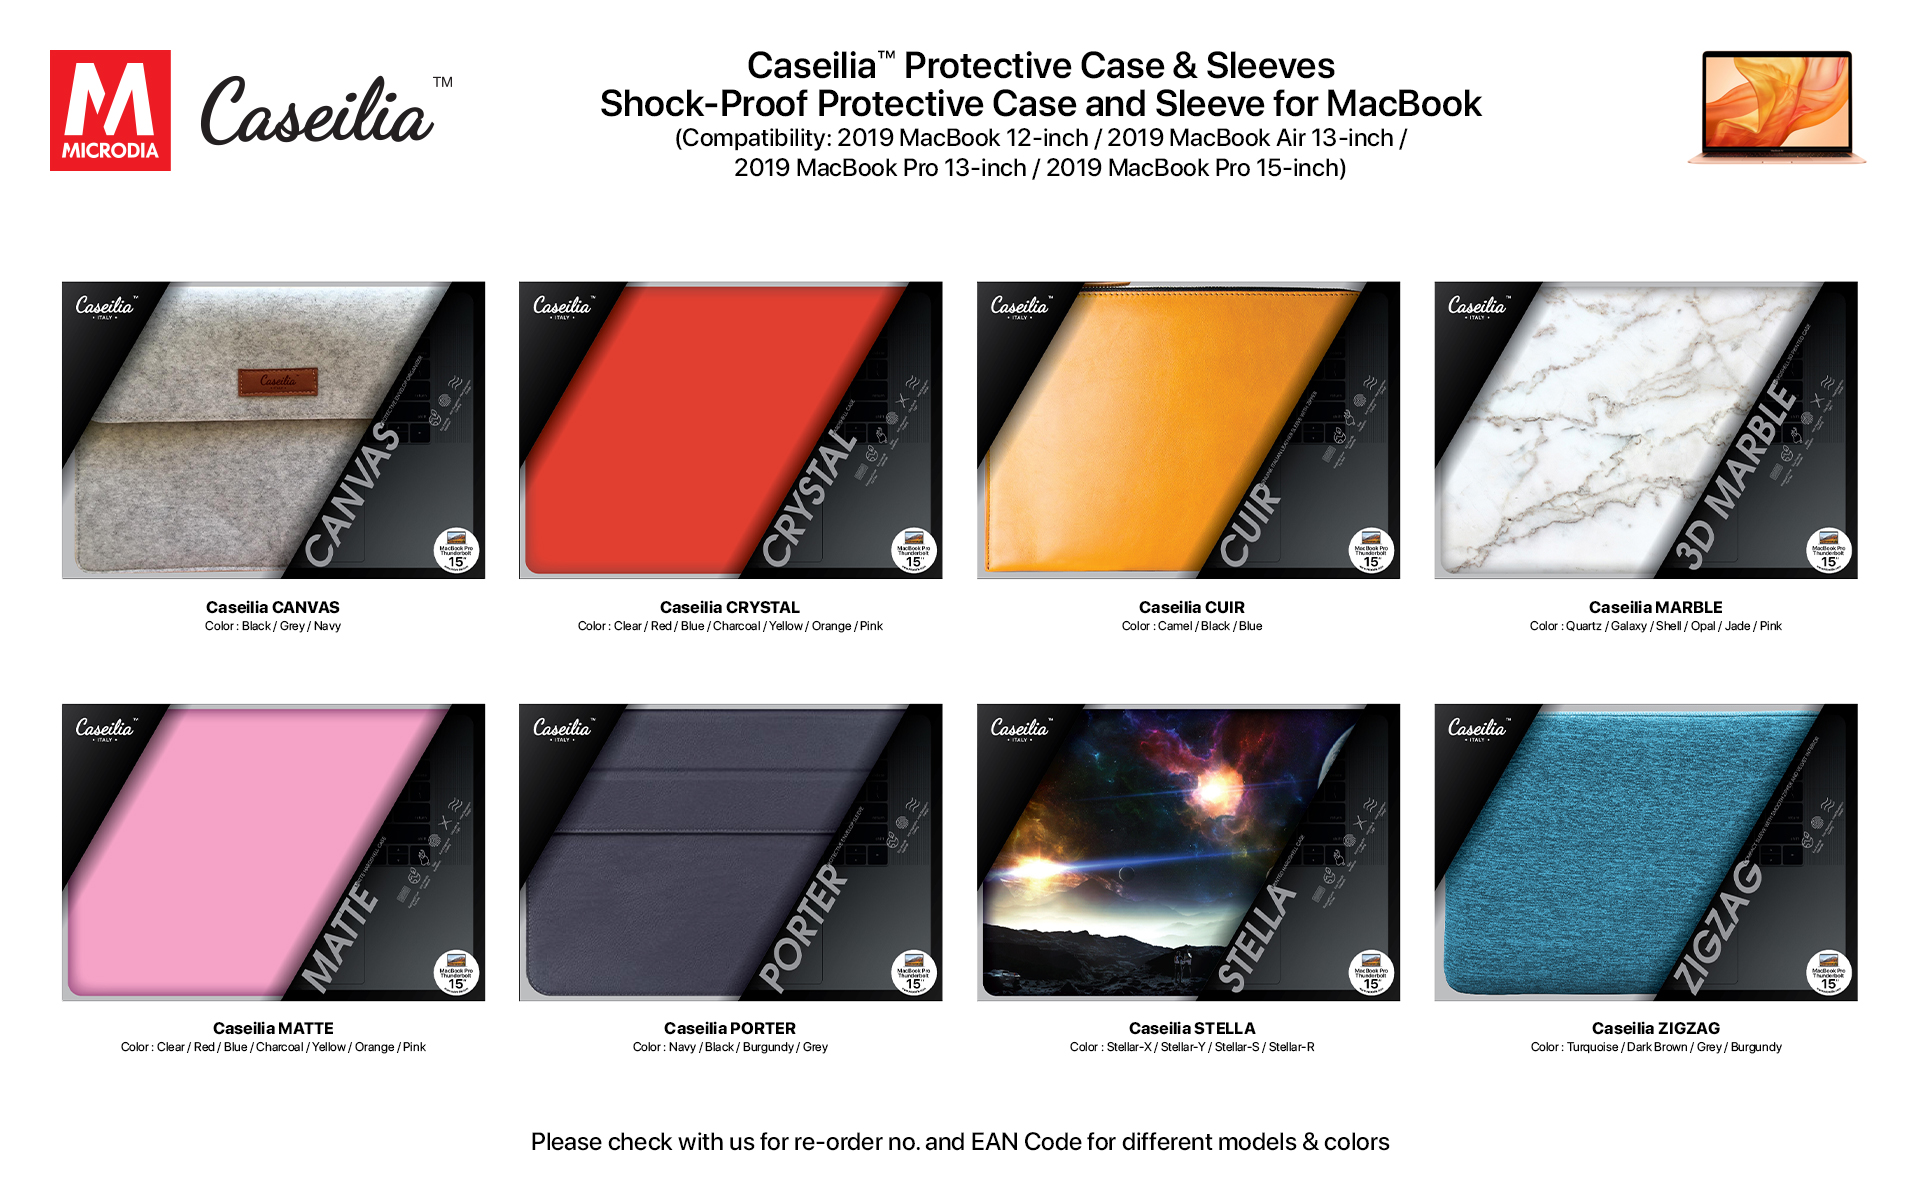 23. Caseilia-MacBook Case